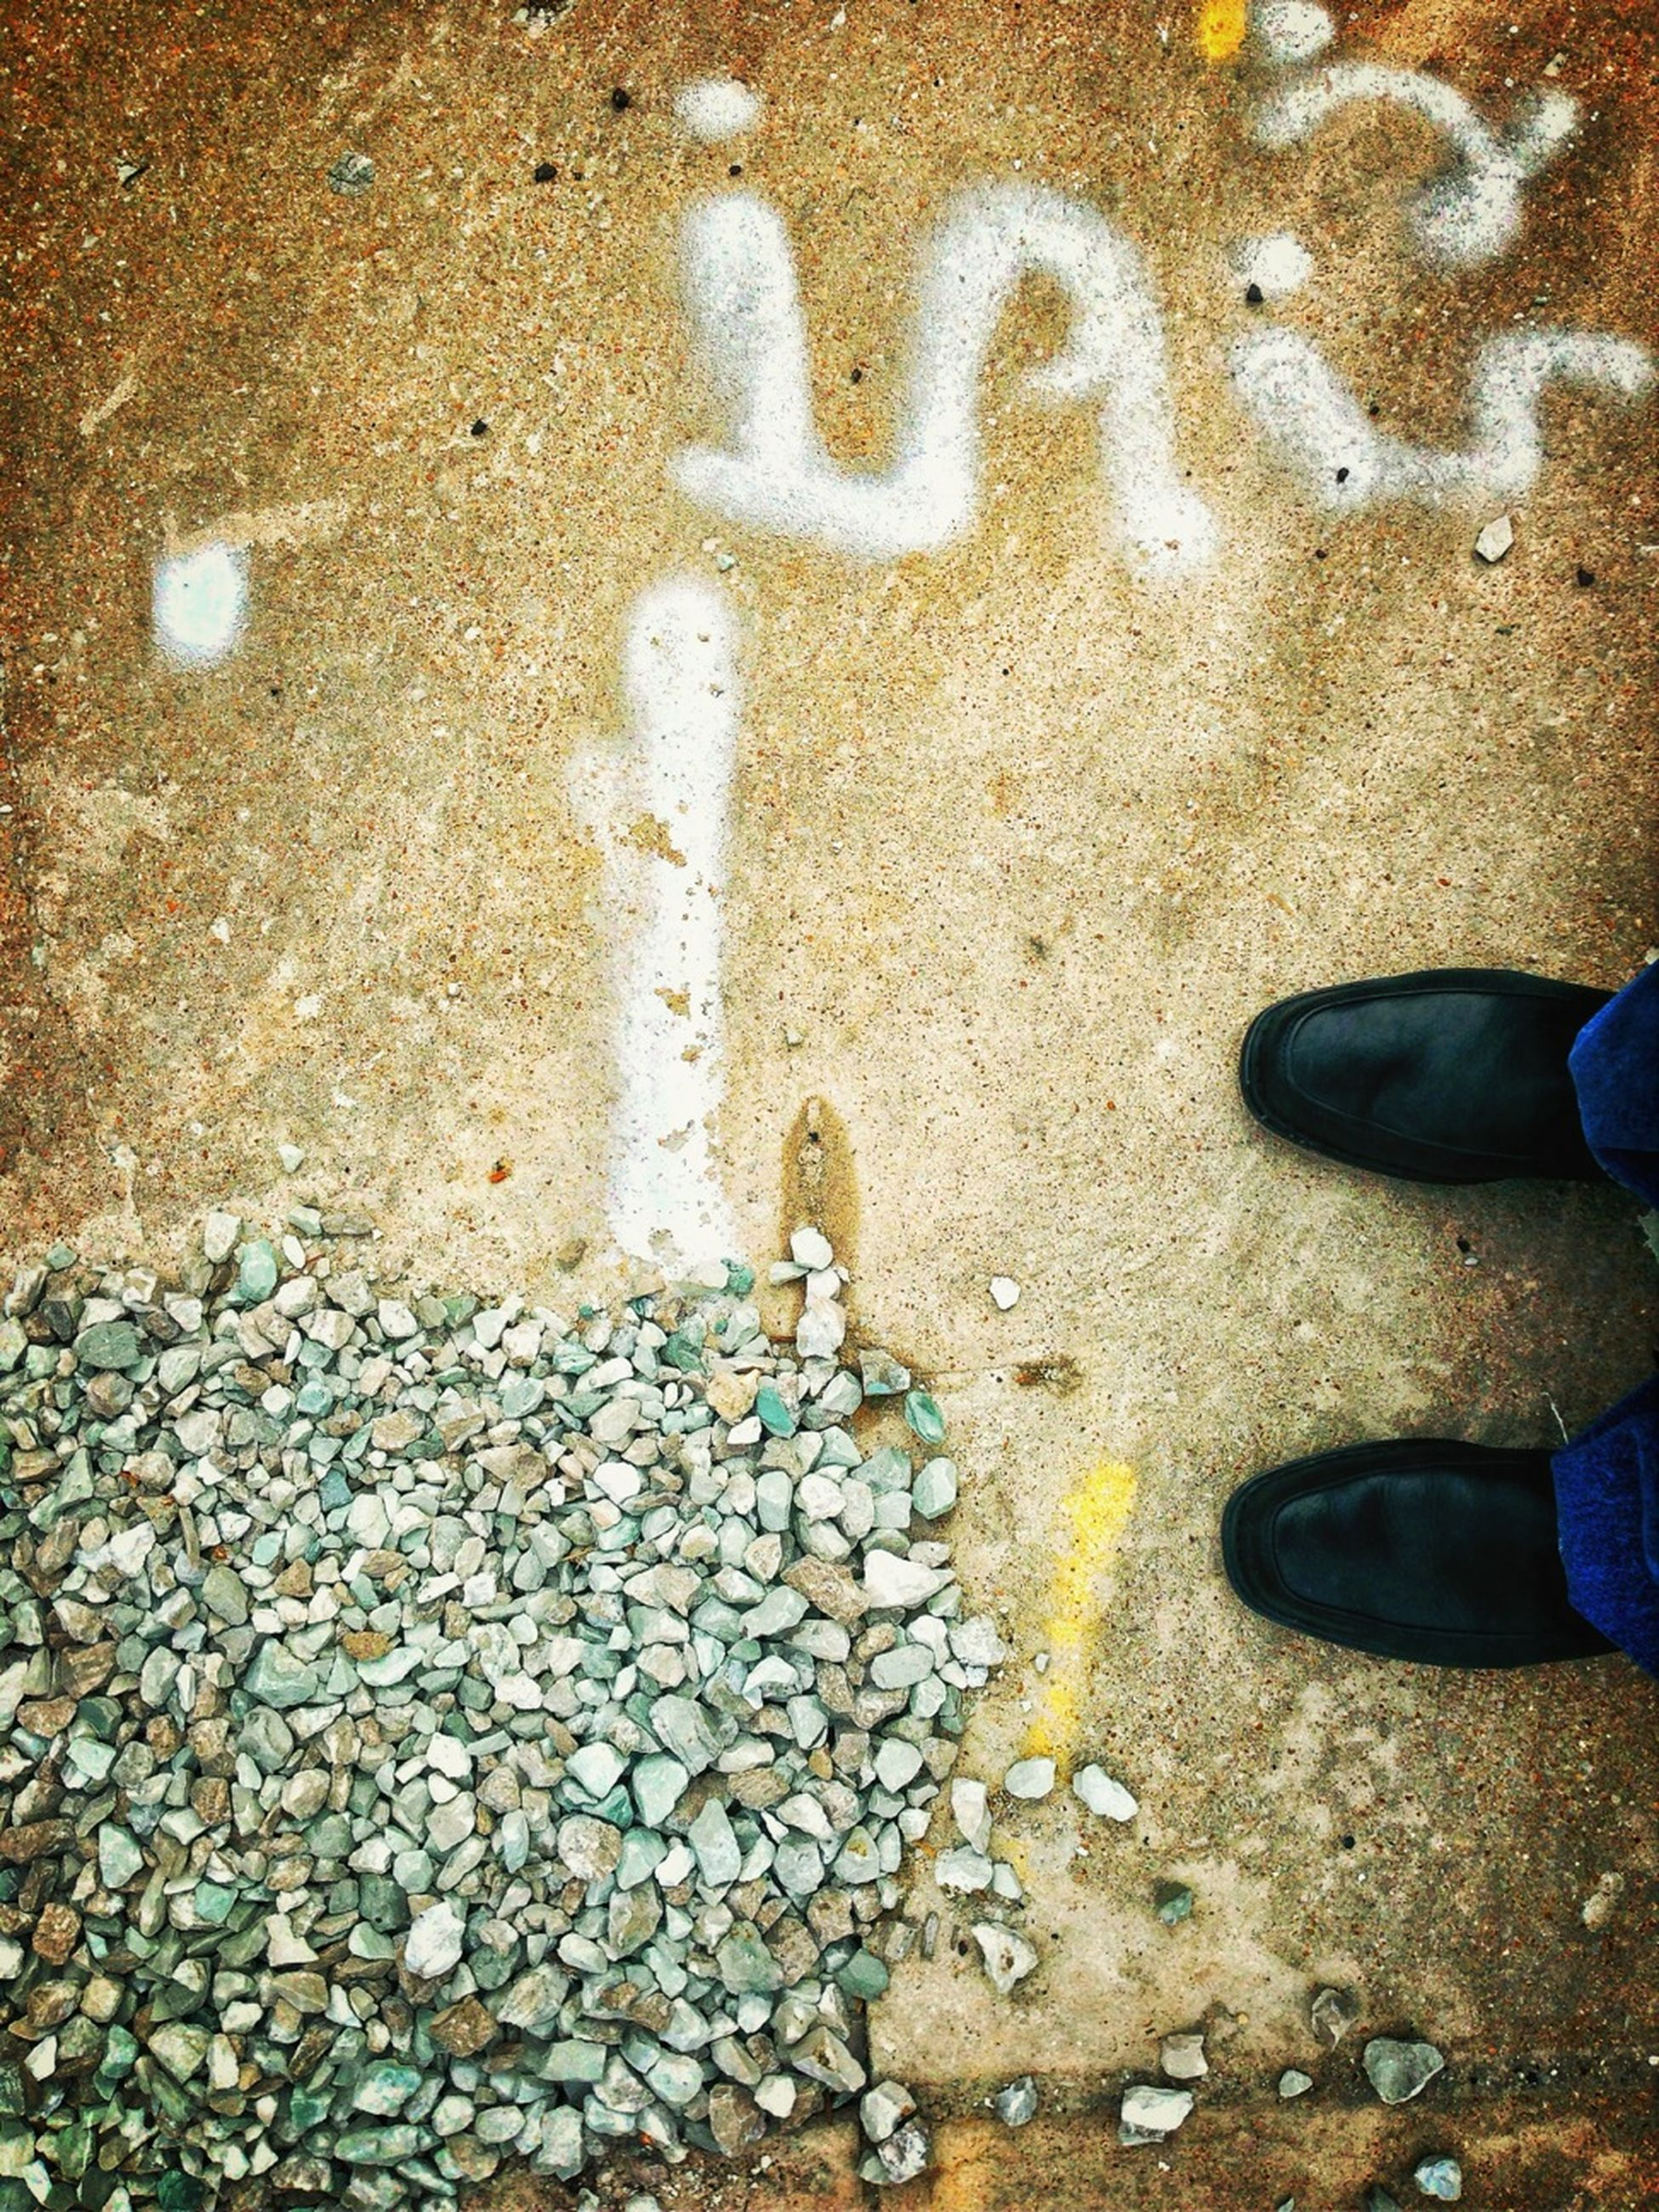 high angle view, low section, street, asphalt, text, person, shoe, standing, textured, stone - object, personal perspective, outdoors, lifestyles, human foot, beach, day, communication